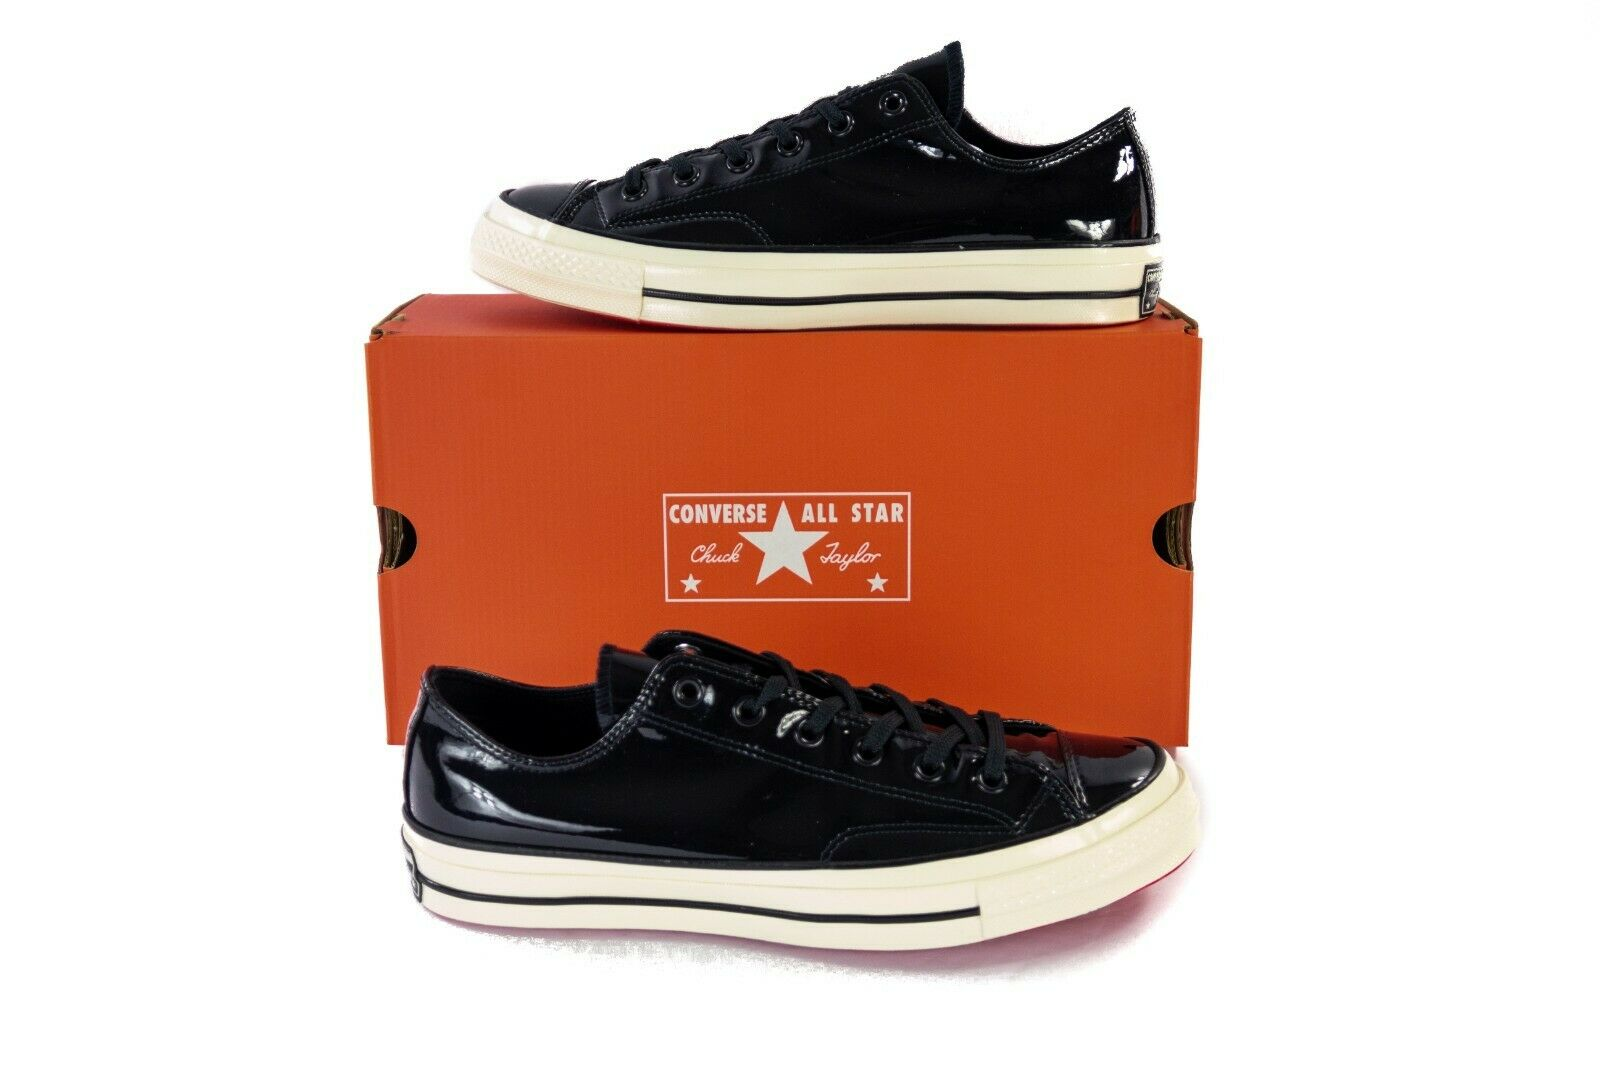 Converse Converse Converse Chuck Taylor All Star 70 1970s Patent Leather nero Low scarpe 162438C d1da29